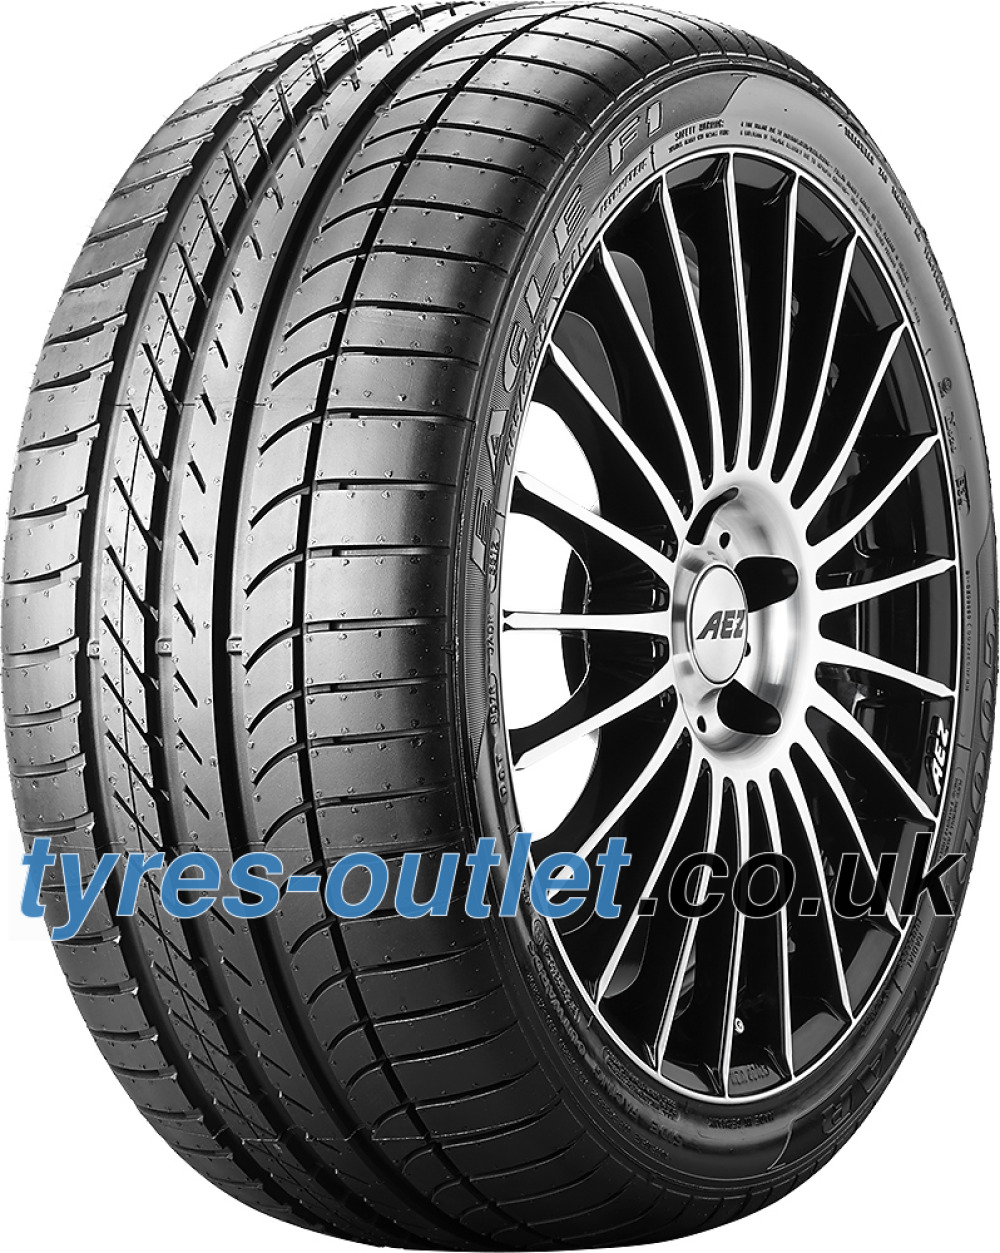 Goodyear Eagle F1 Asymmetric ( 265/40 R20 104Y XL AO, SCT, with rim protection (MFS) )